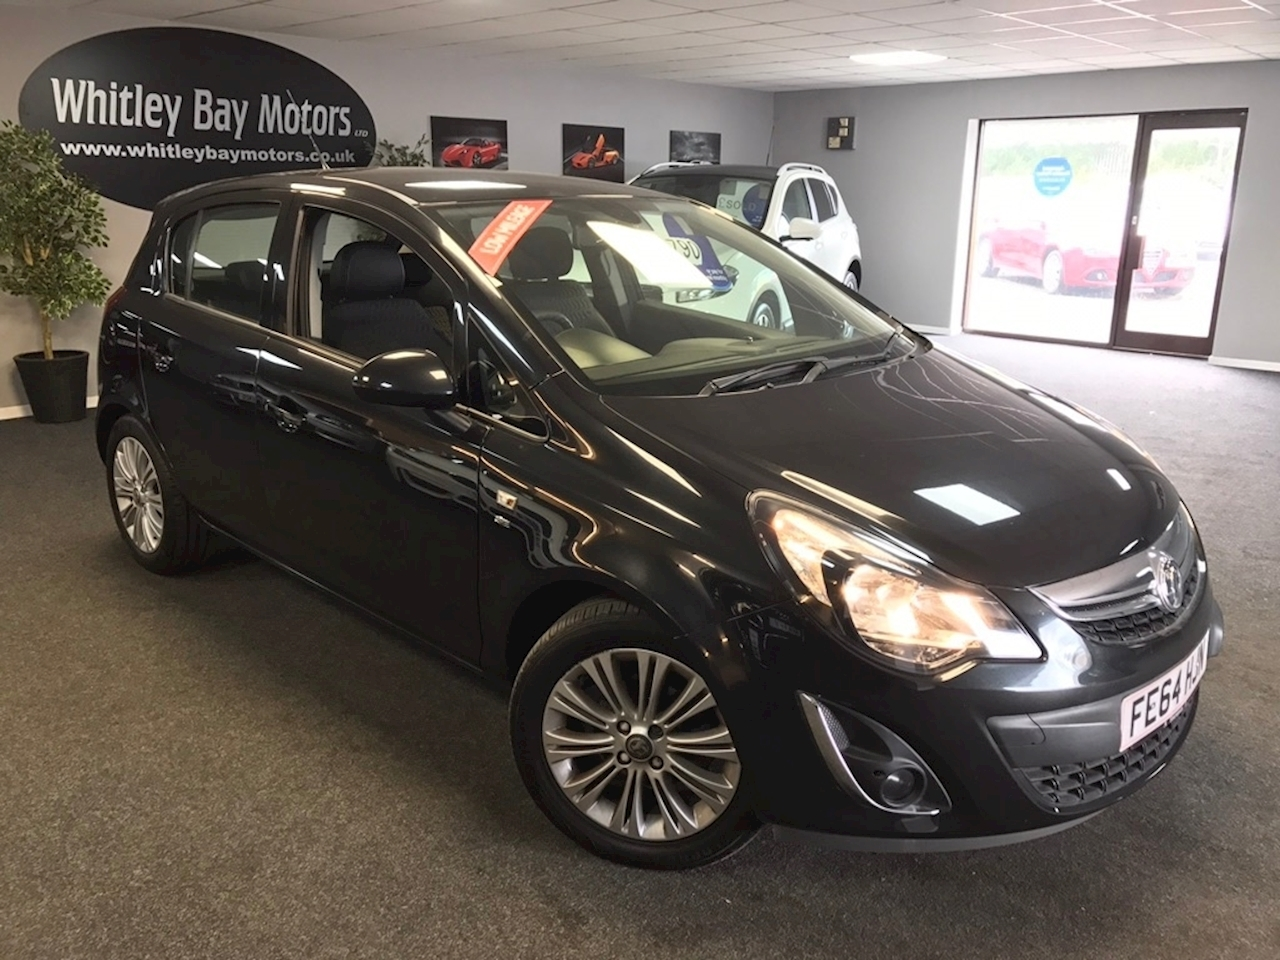 Corsa Se Hatchback 1.4 Manual Petrol